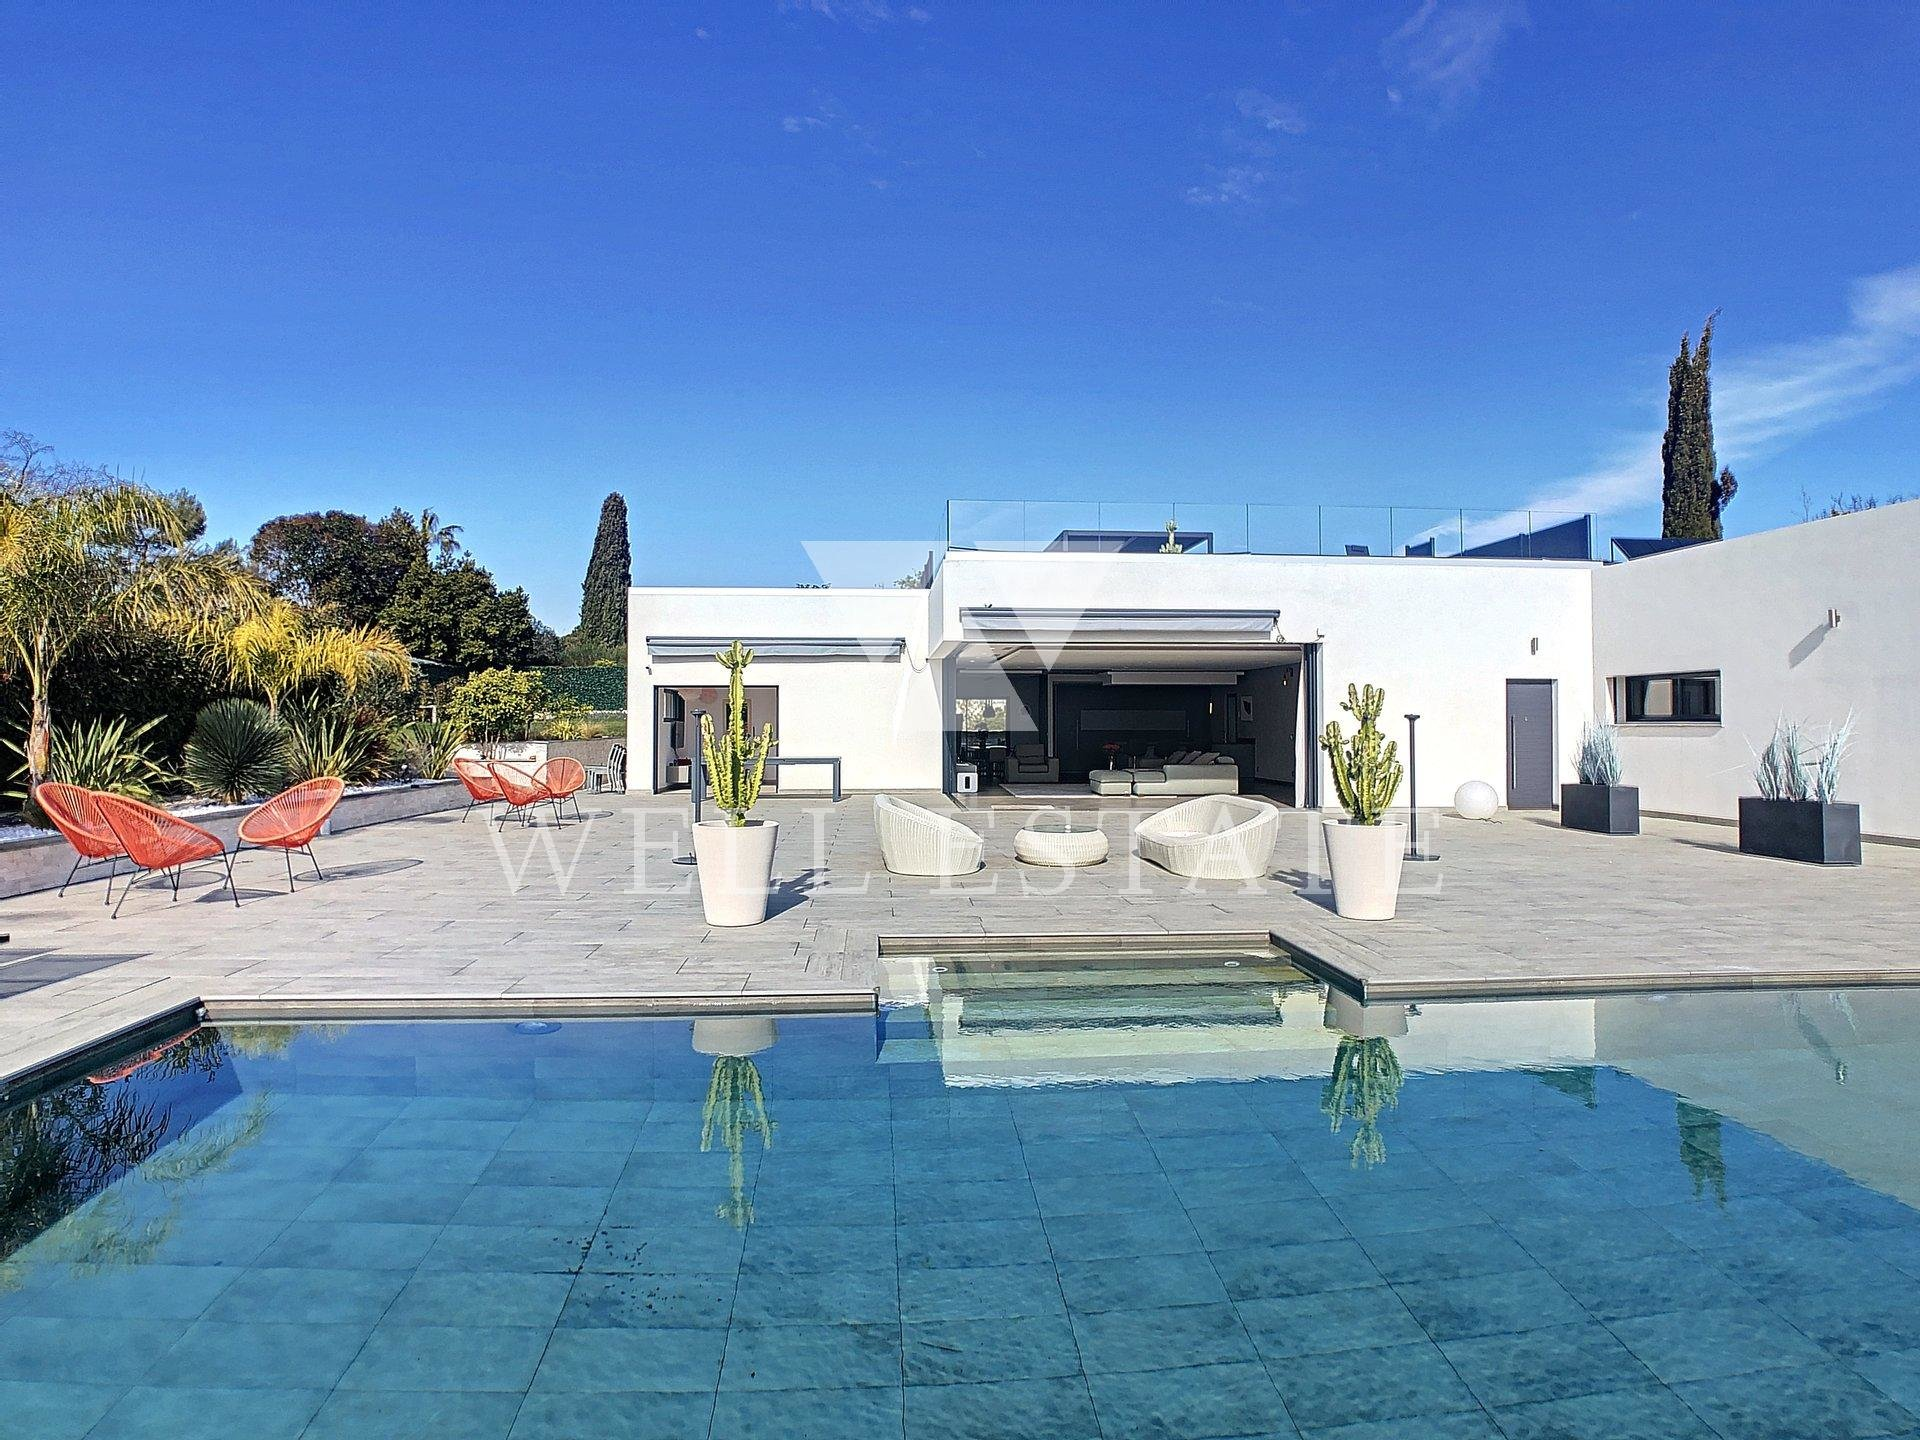 ANTIBES ROOF TERRASE VILLA 257M2 4 BEDROOMS SEA VIEW SWIMMING POOL